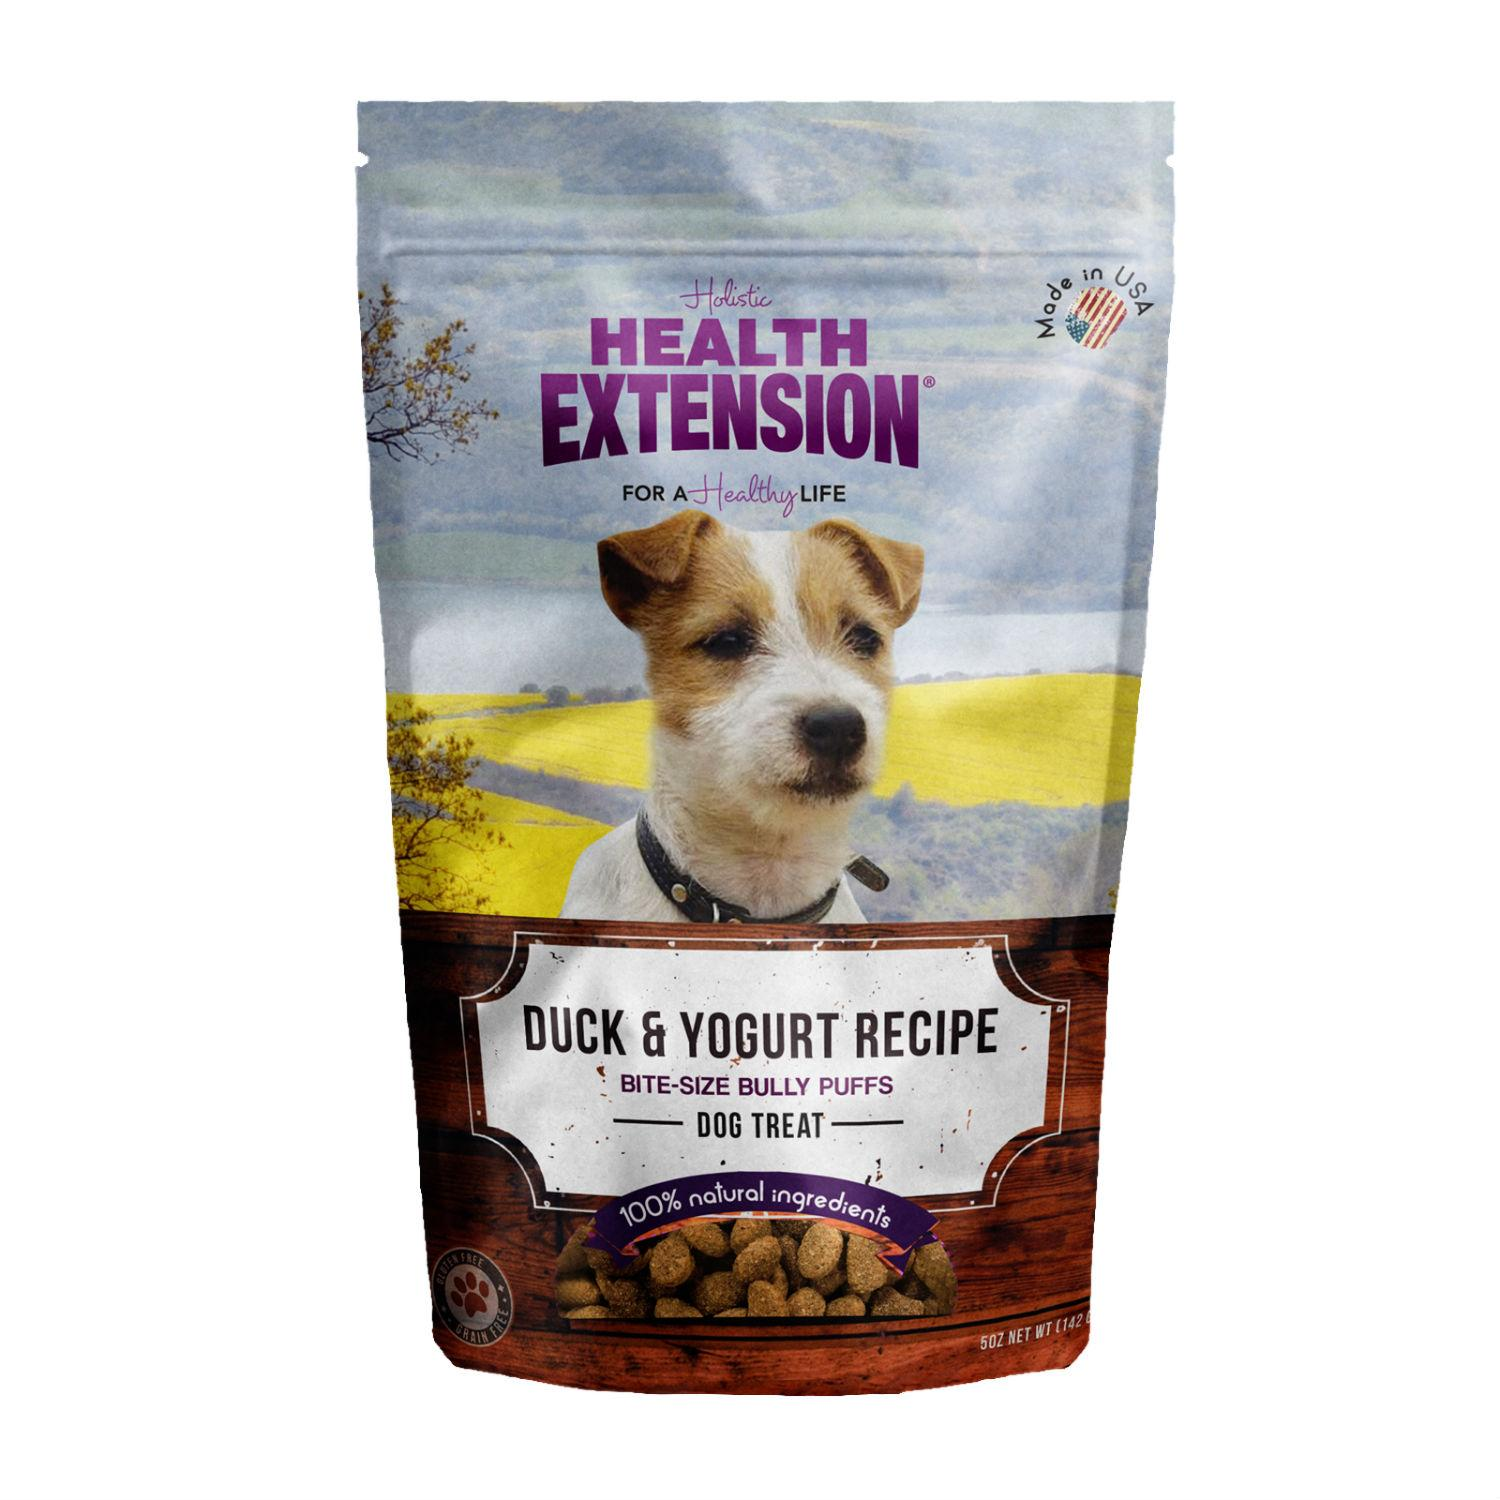 Health Extension Bully Puff Dog Treat - Duck & Yogurt